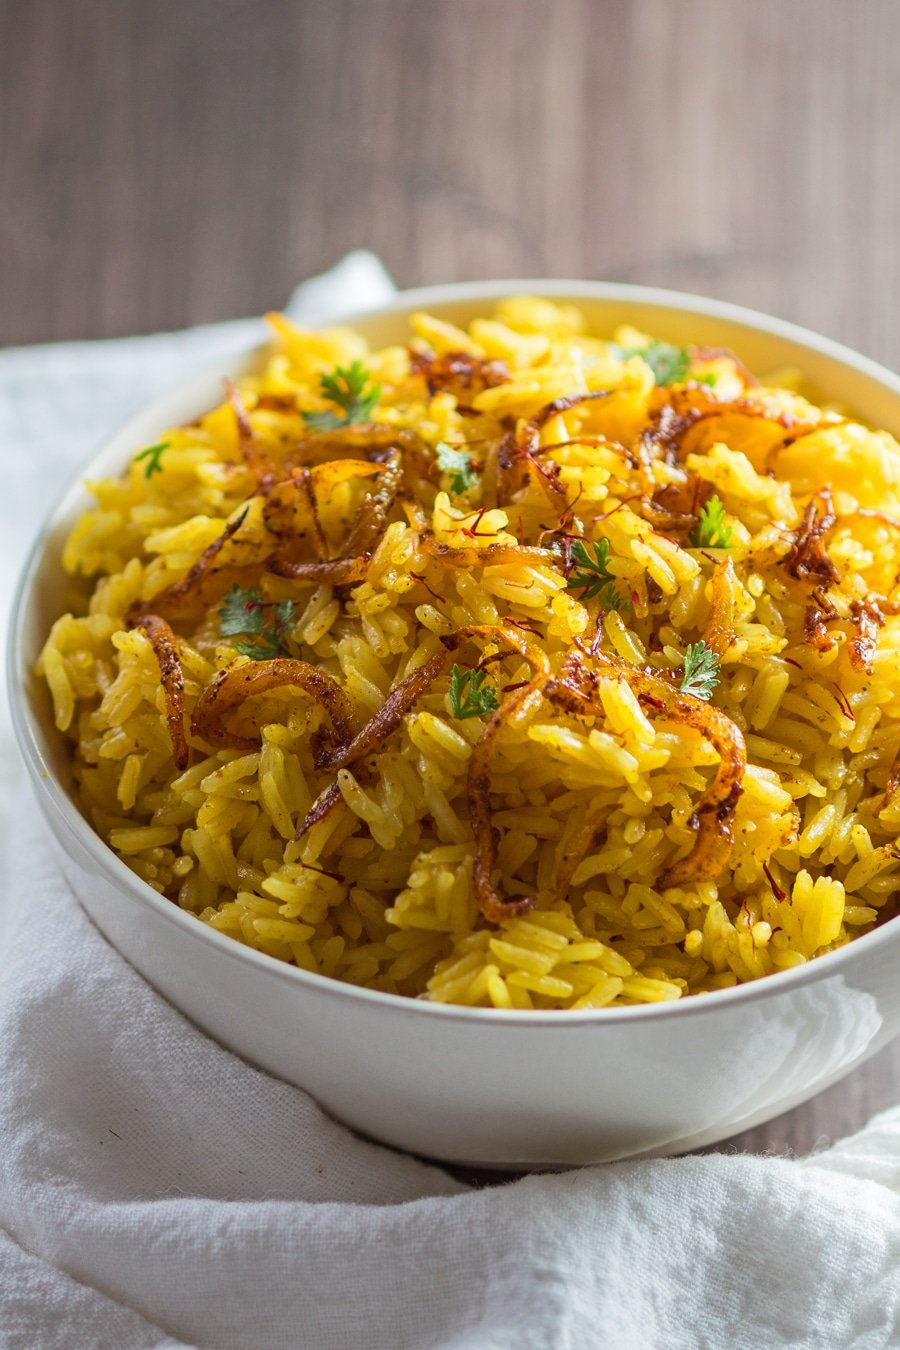 vertical angled side view image of the fragrant saffron jasmine rice ready to serve.